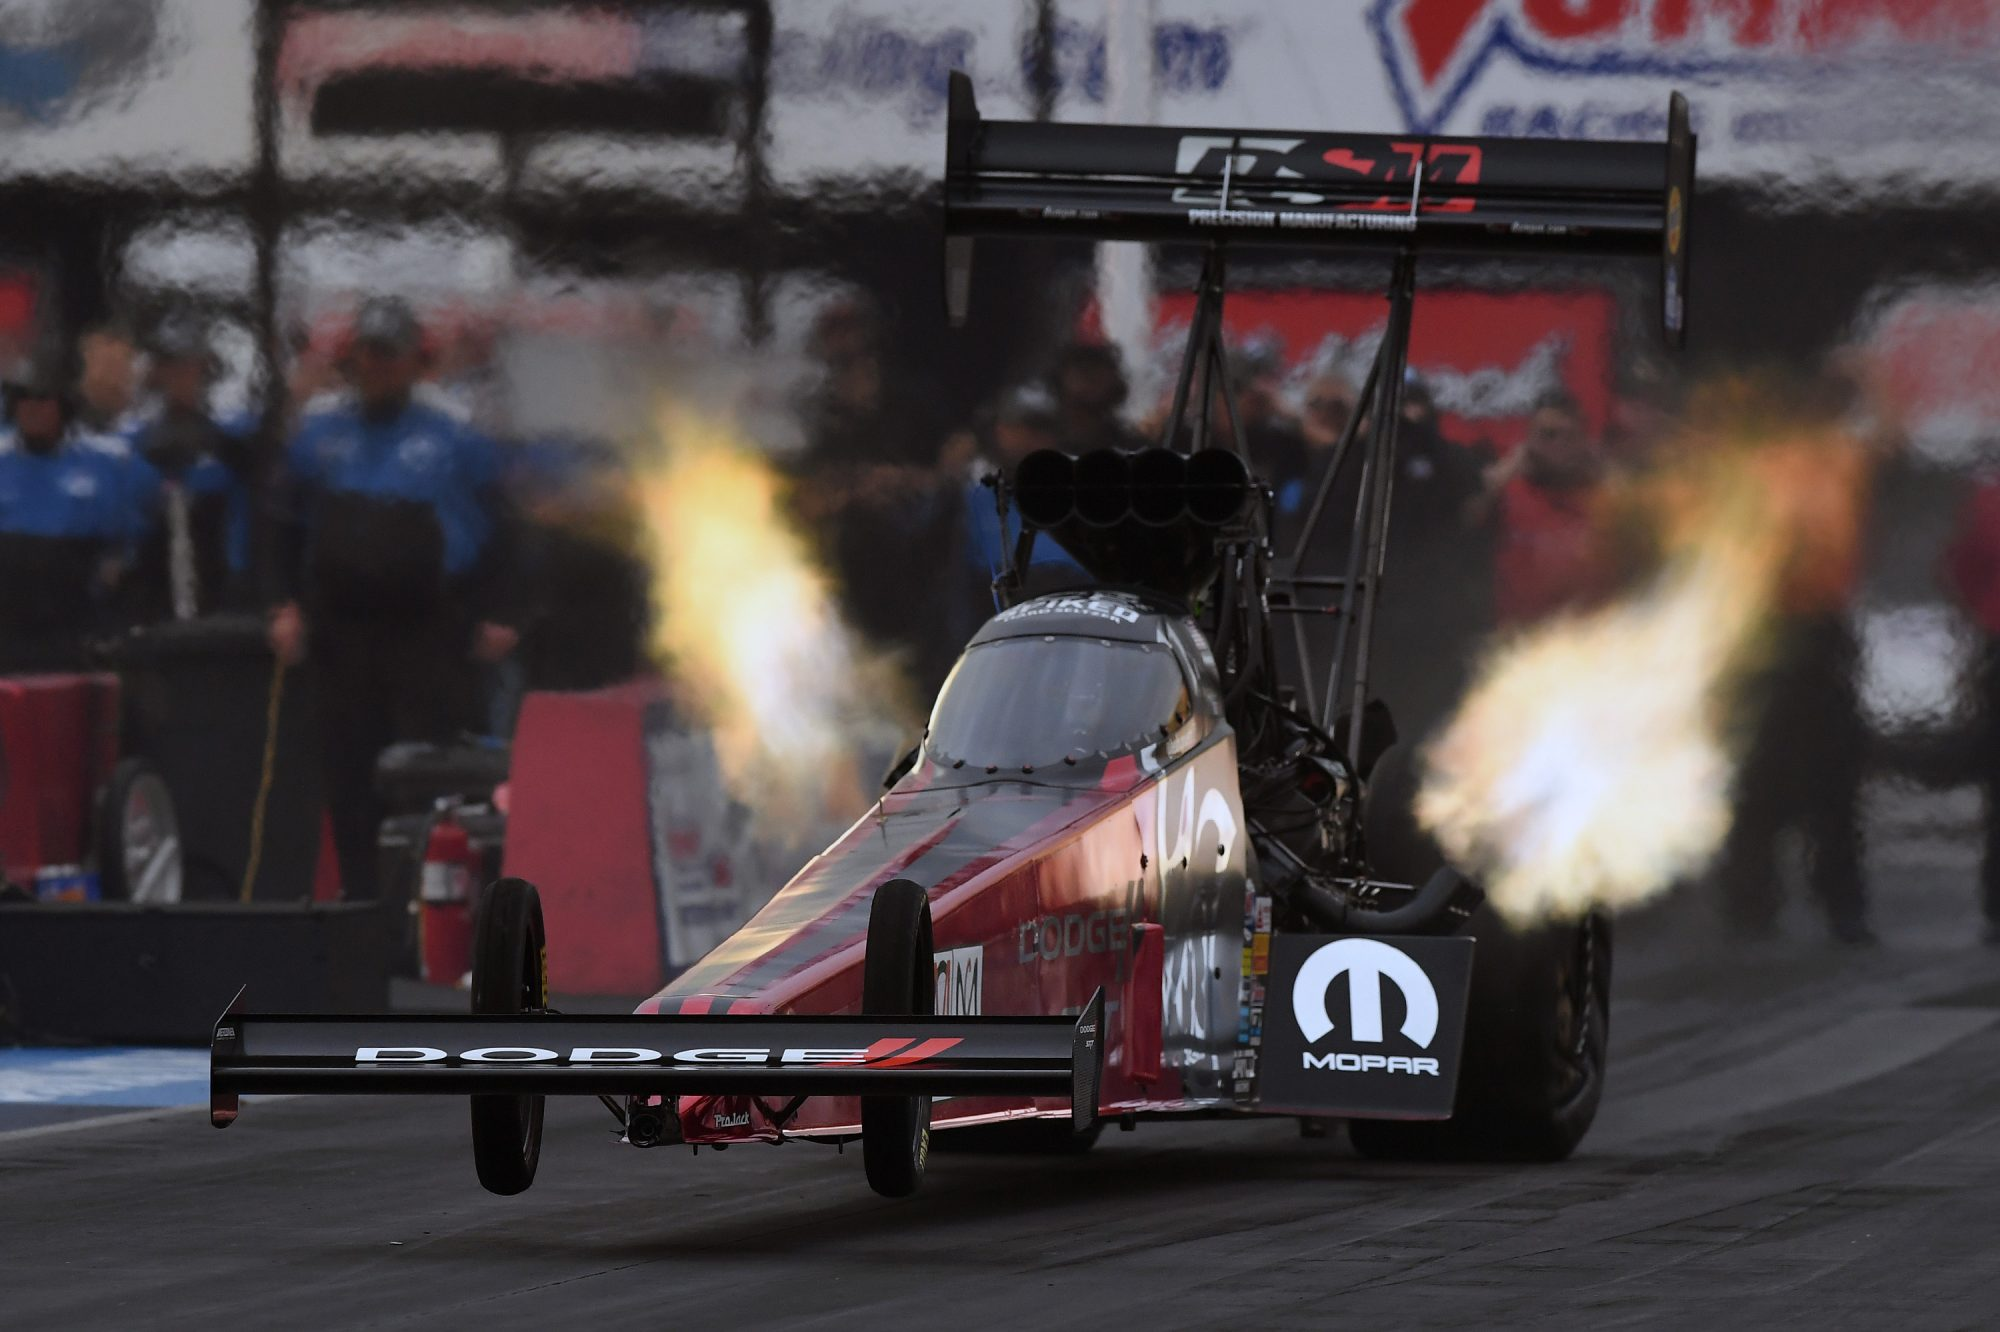 Precision Manufacturing Dragster with fire coming out of it